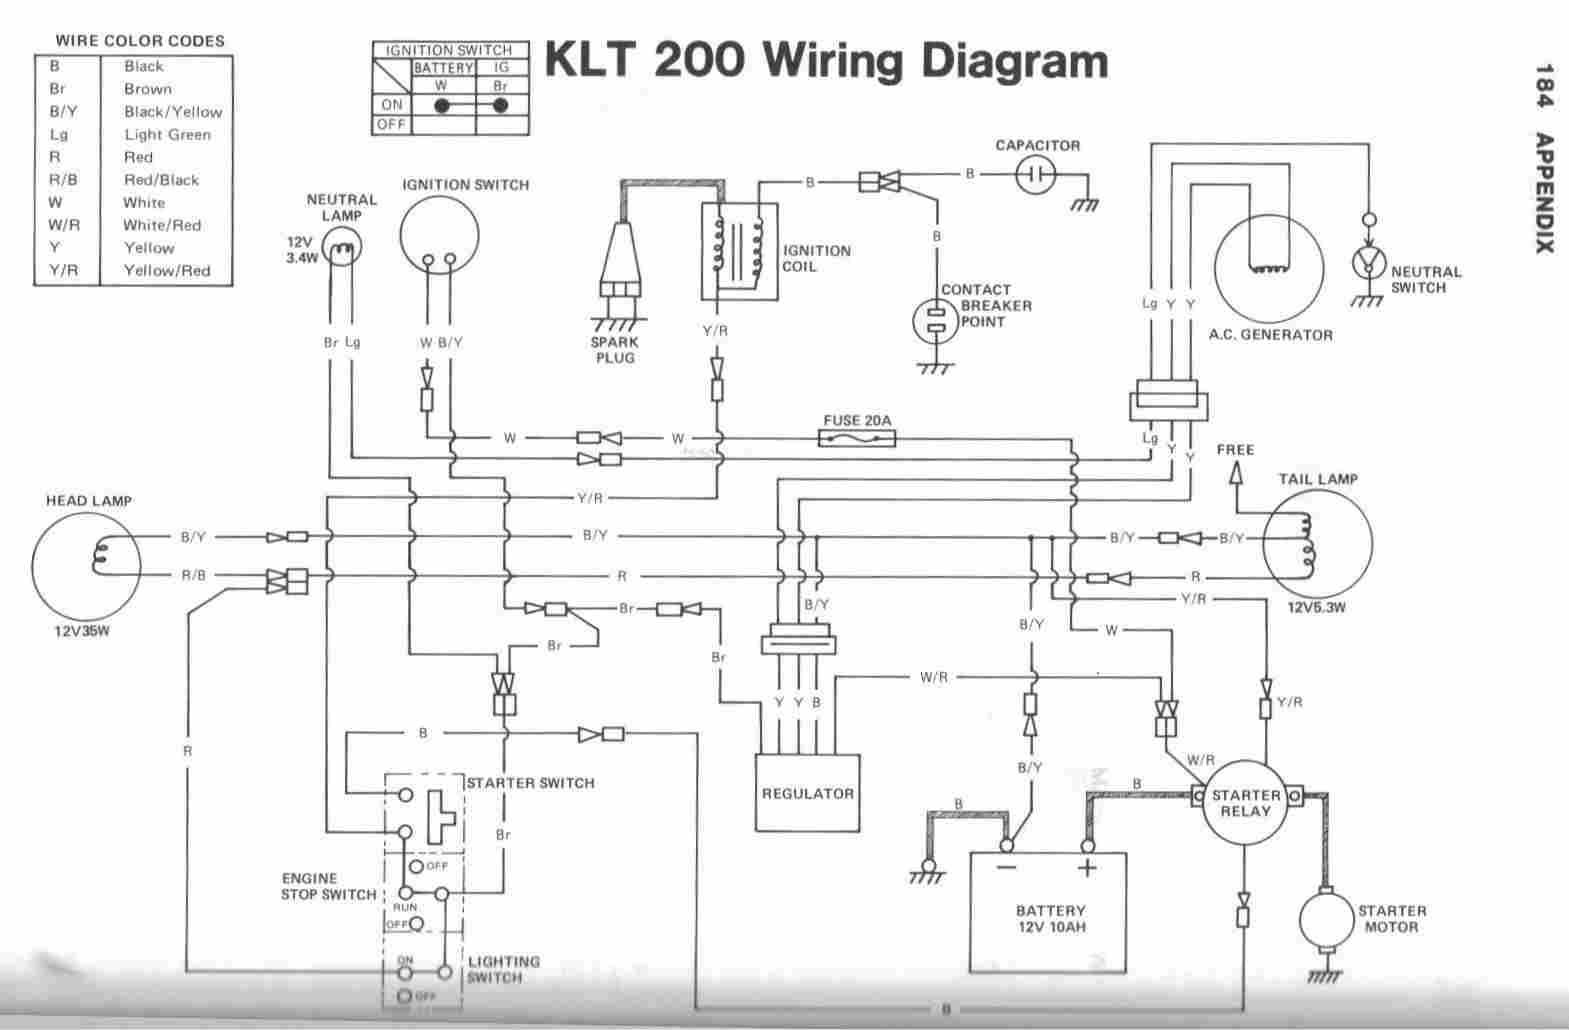 House Wiring Diagrams : Residential electrical wiring diagrams pdf easy routing